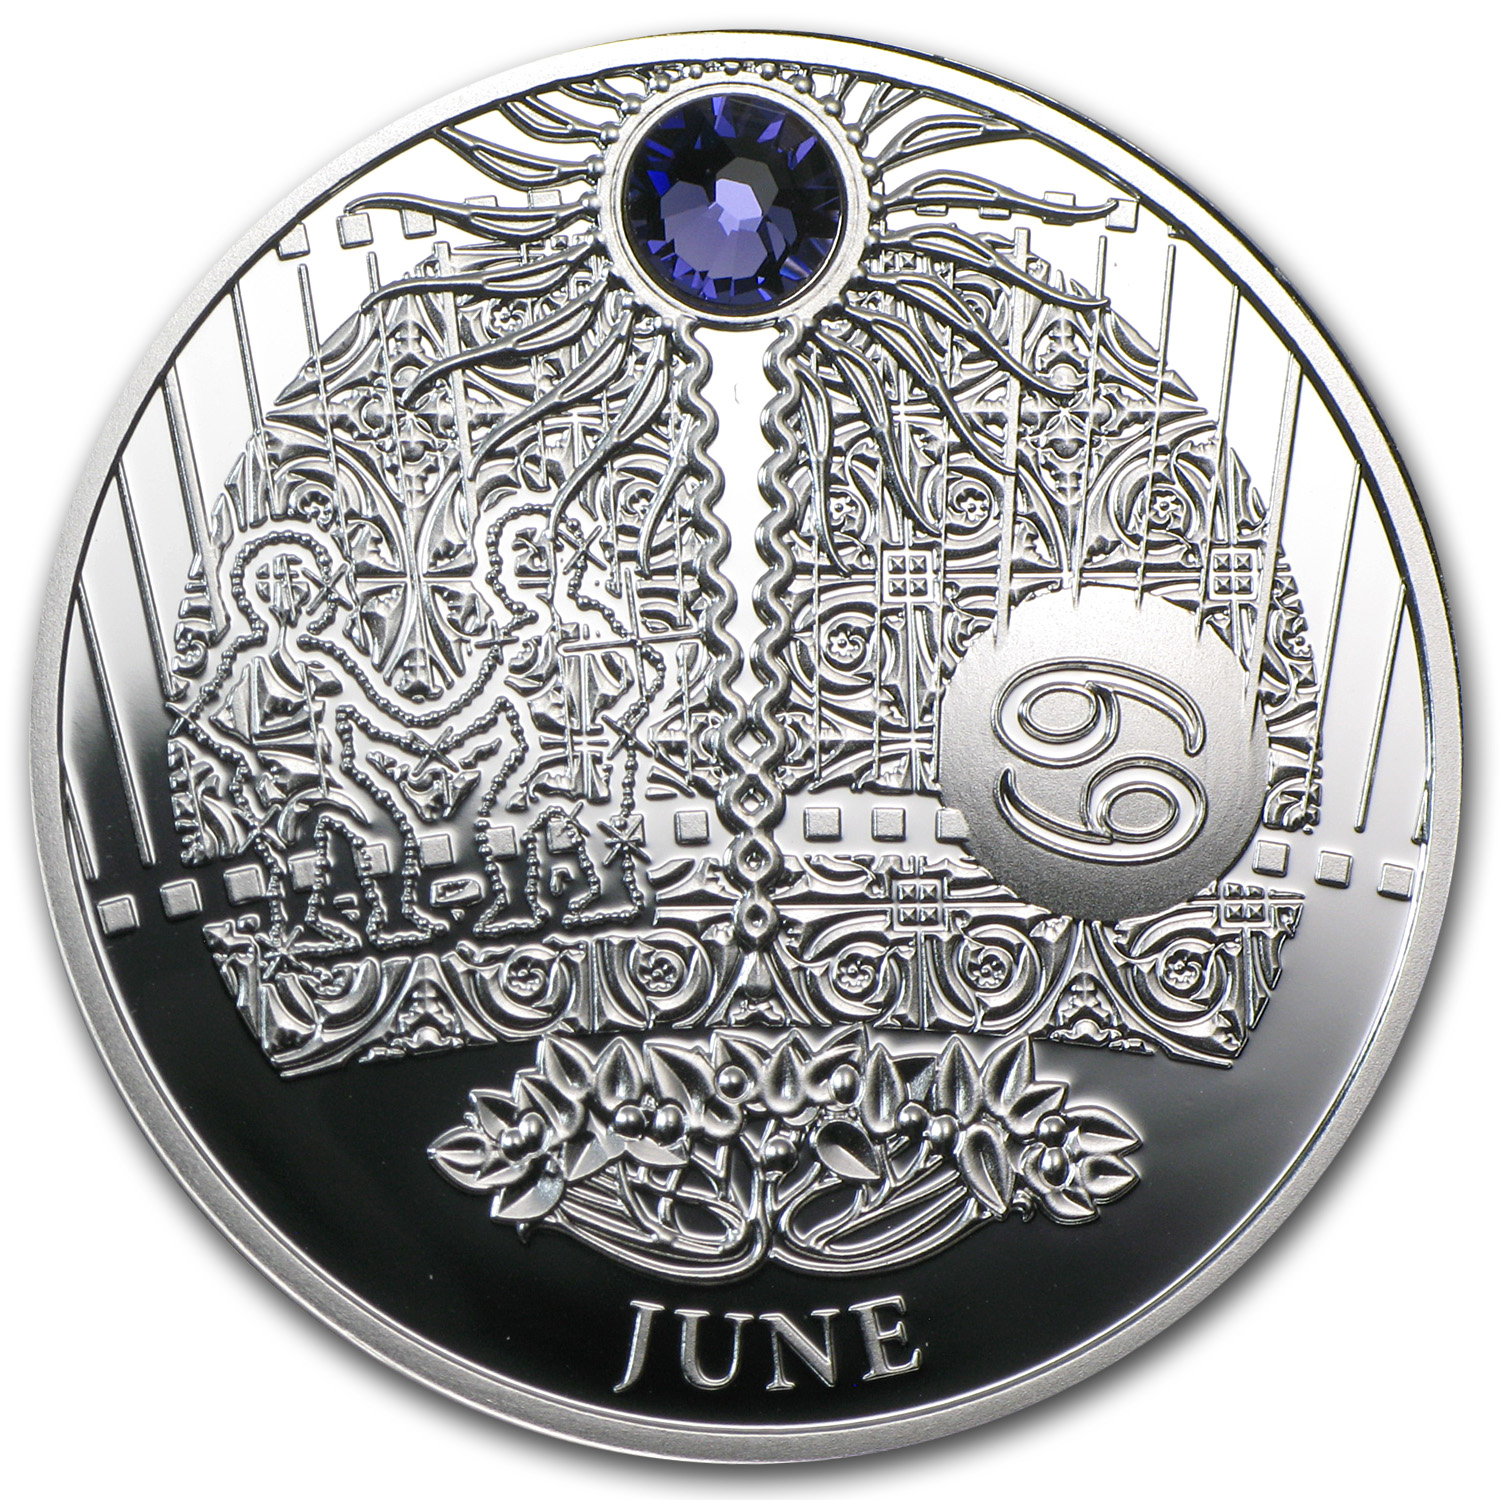 2013 Niue Proof Silver $1 Magic Calendar of Happines June